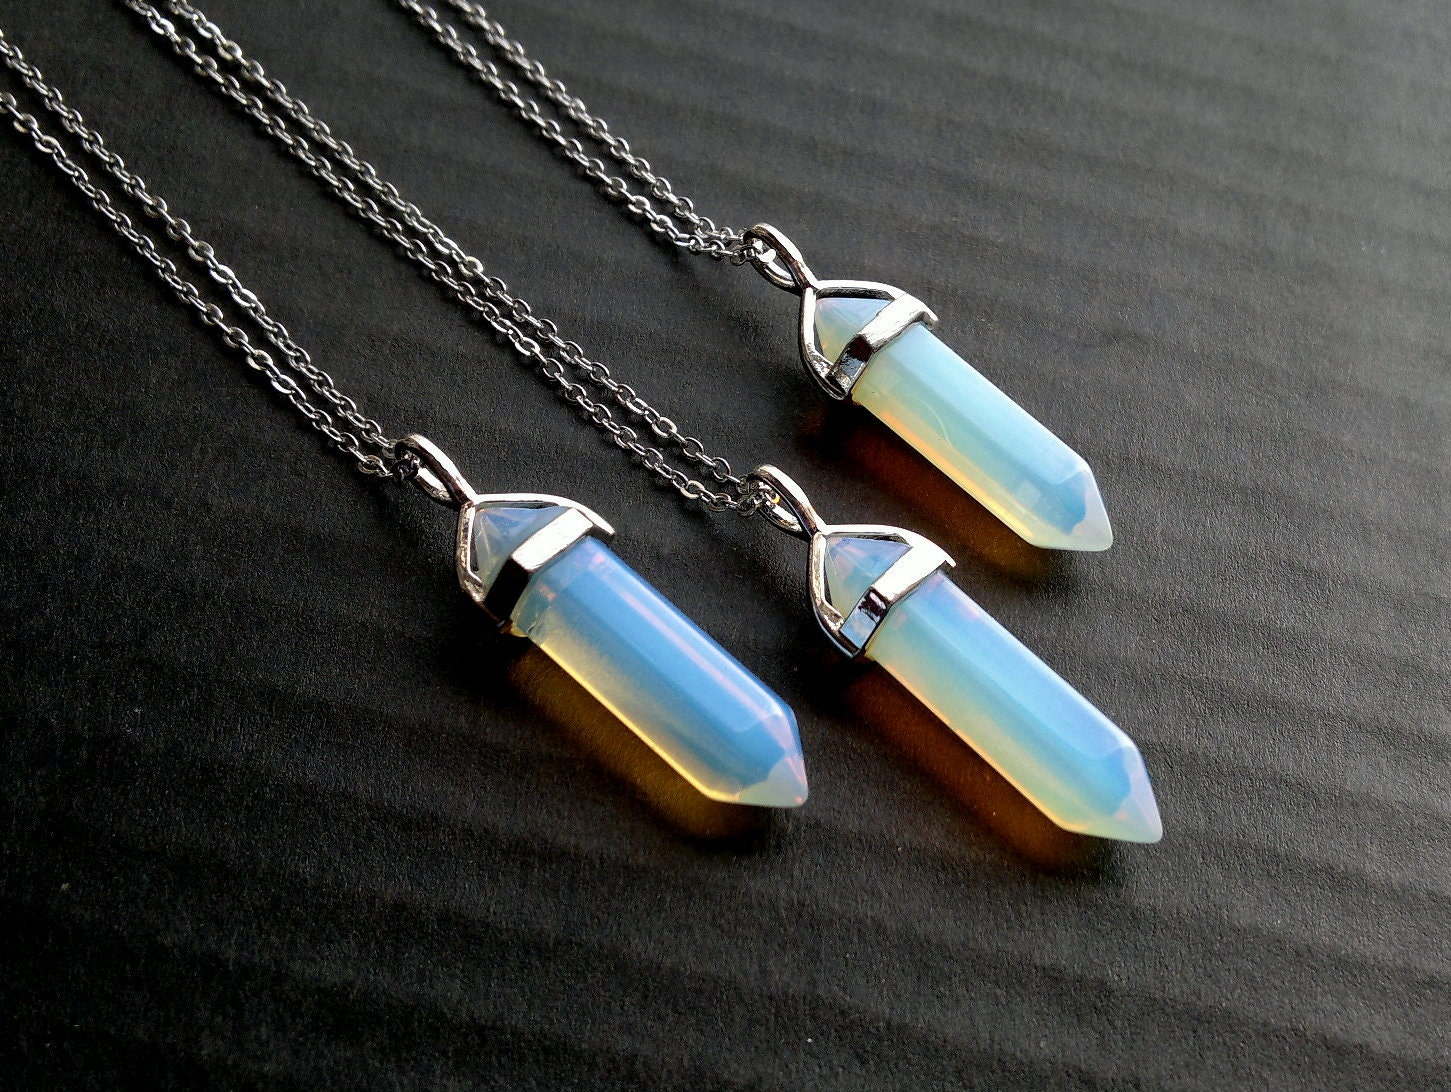 products image in lolly necklace opalite and hex pendant canada studio handmade cloud gemstone jewelry bar